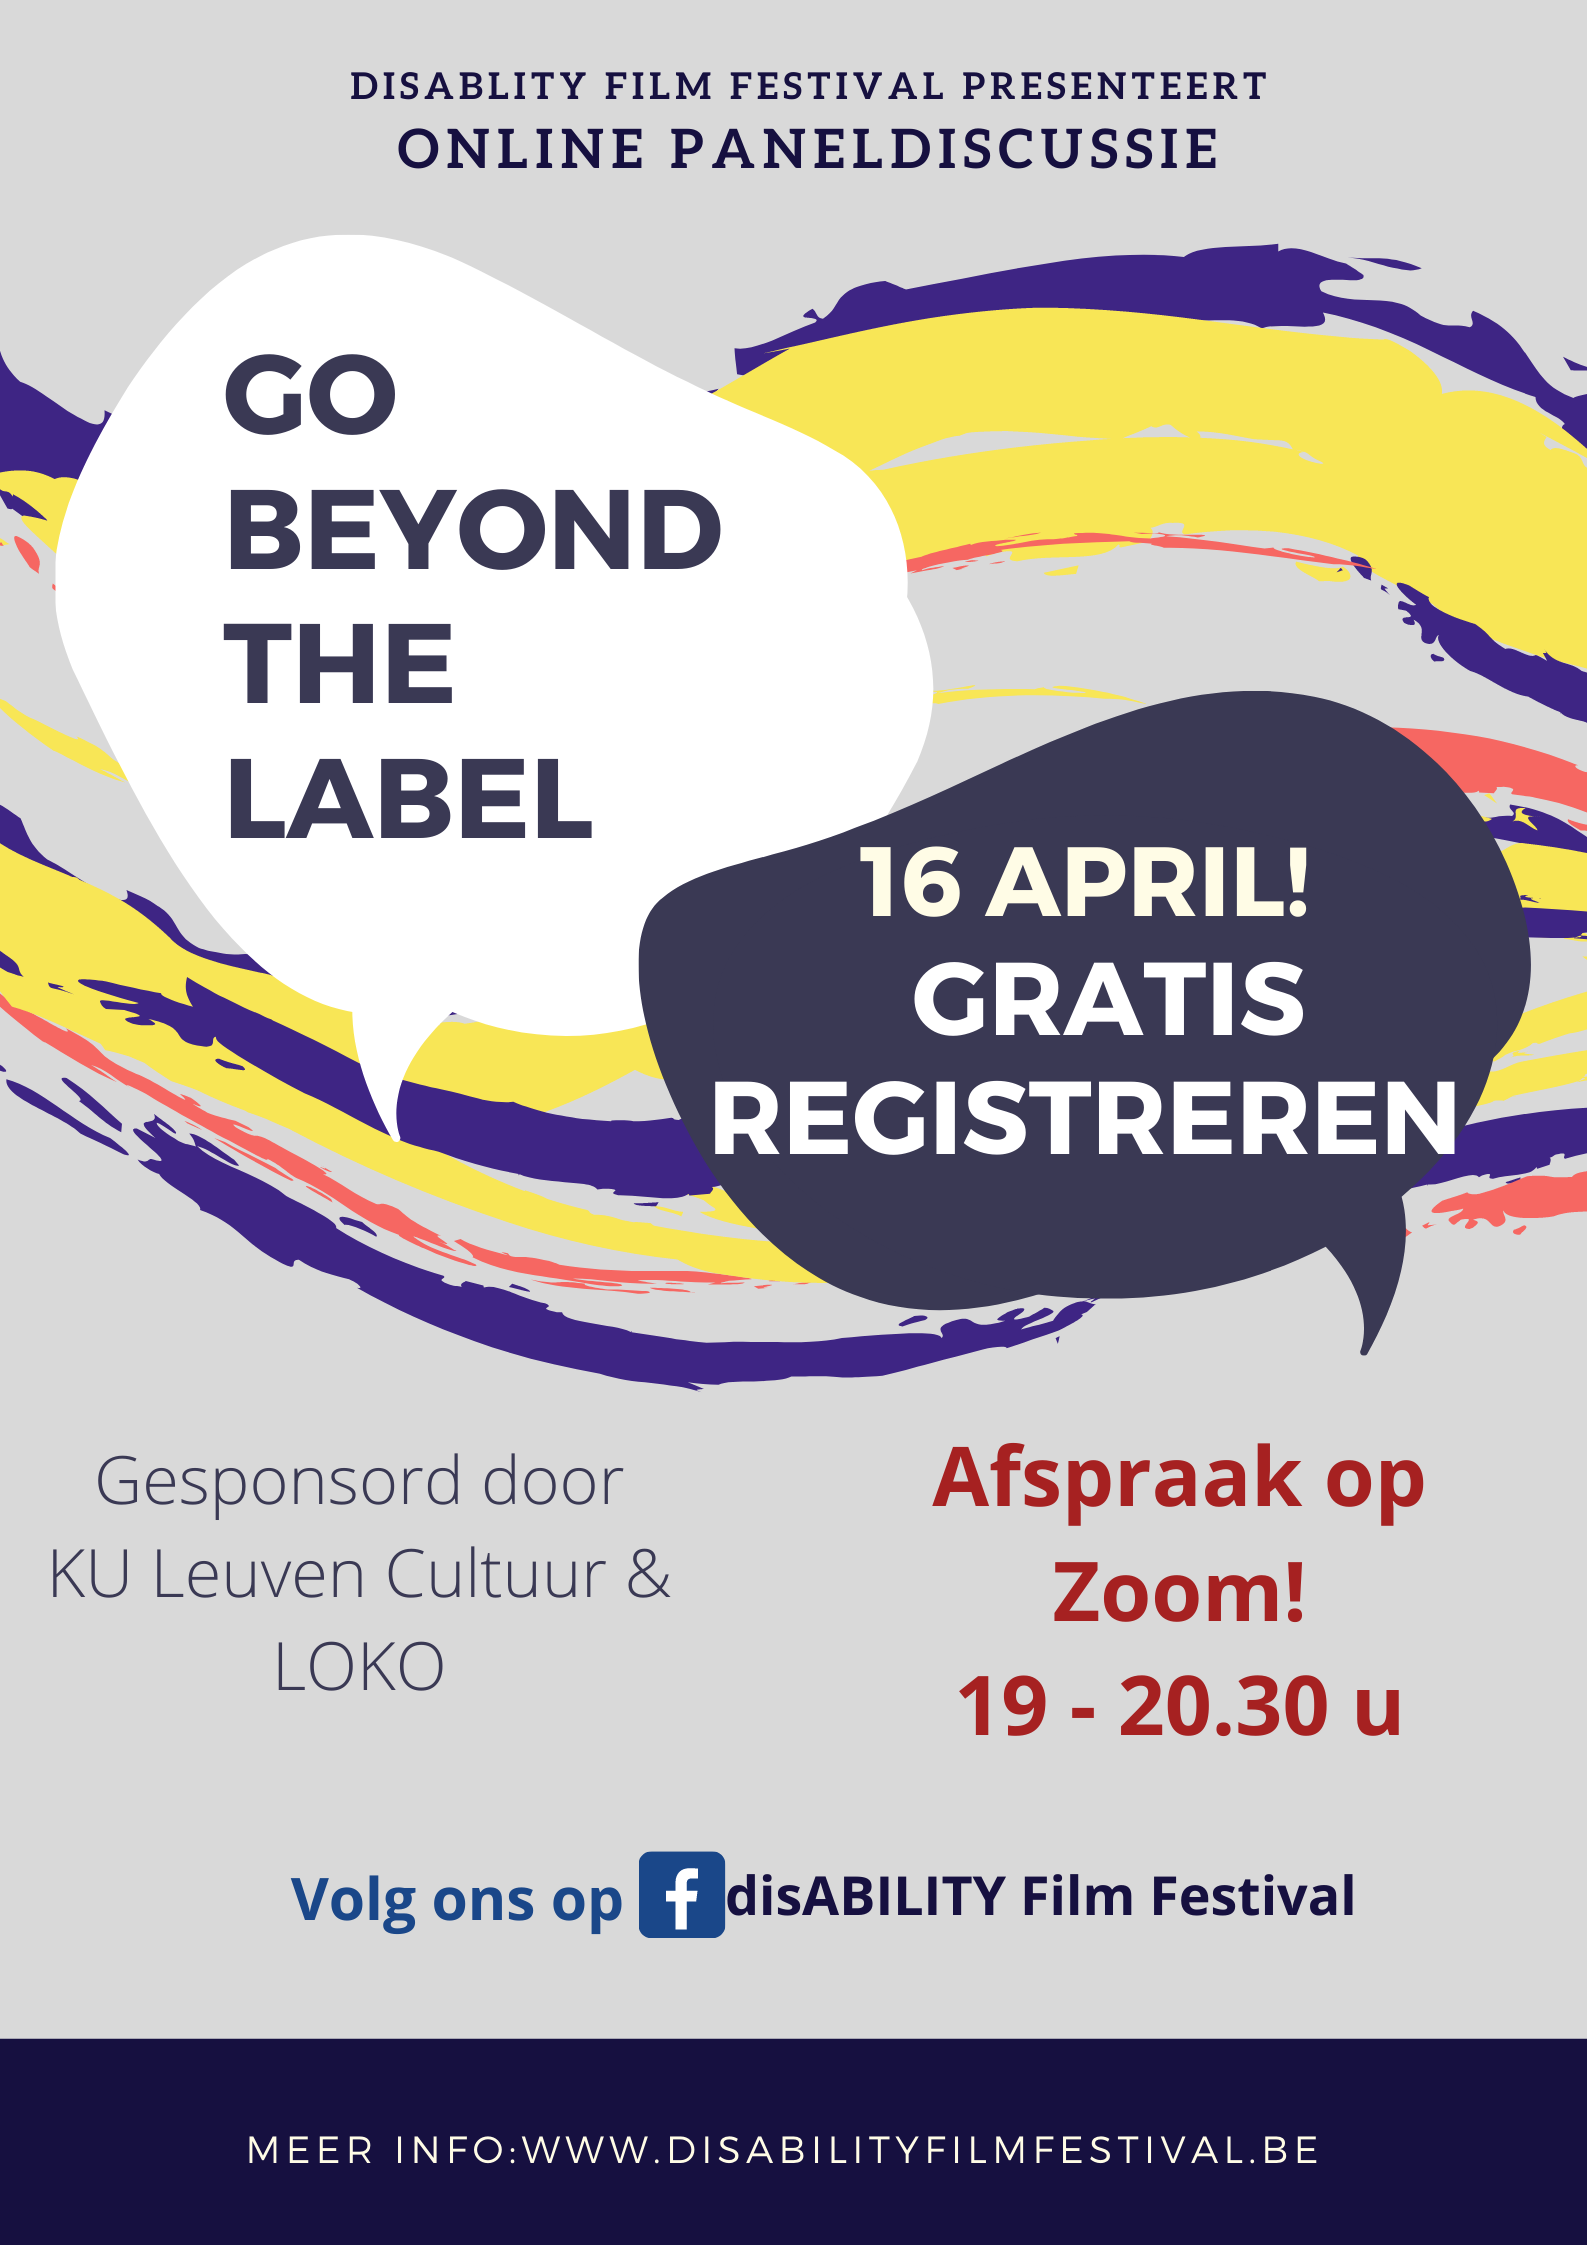 Go beyond the label - online paneldiscussie